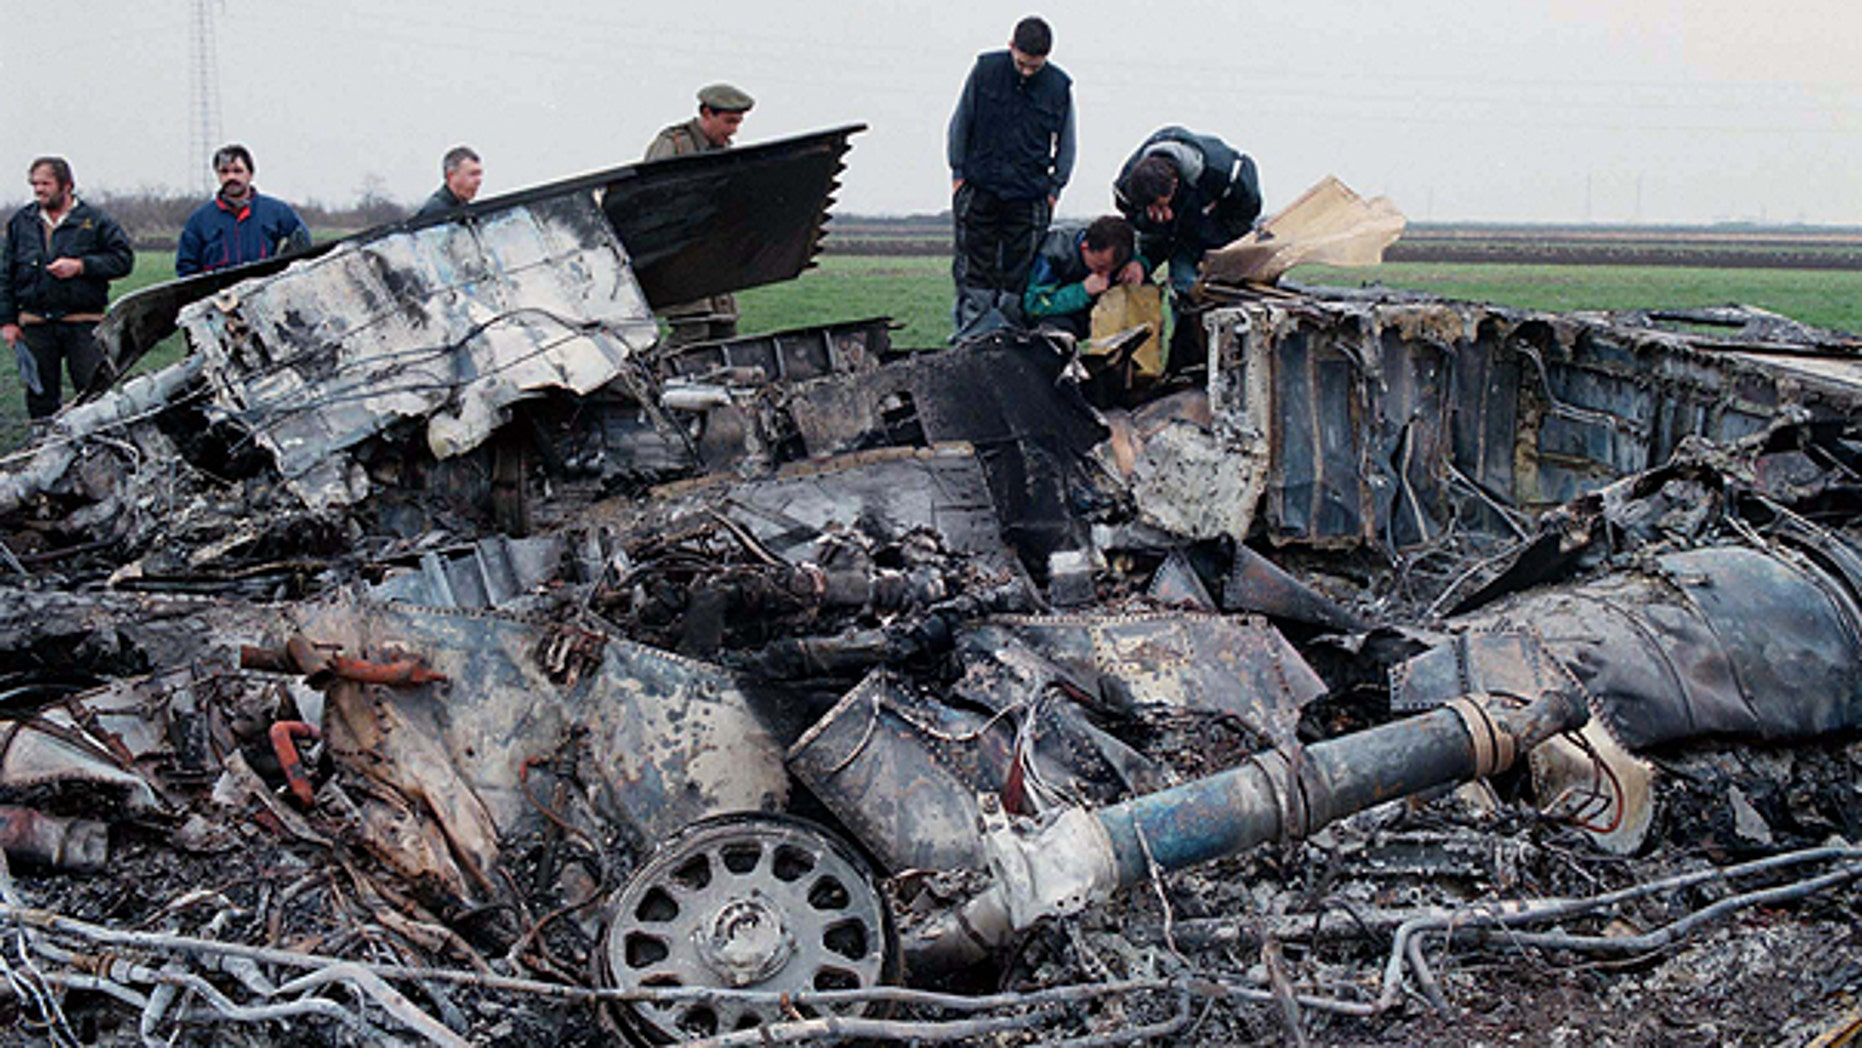 In this March 28, 1999 file photo, Yugoslav army experts check the wreckage of a downed American F-117 aircraft, in the village of Budjanovci, 30 miles northwest of Belgrade.